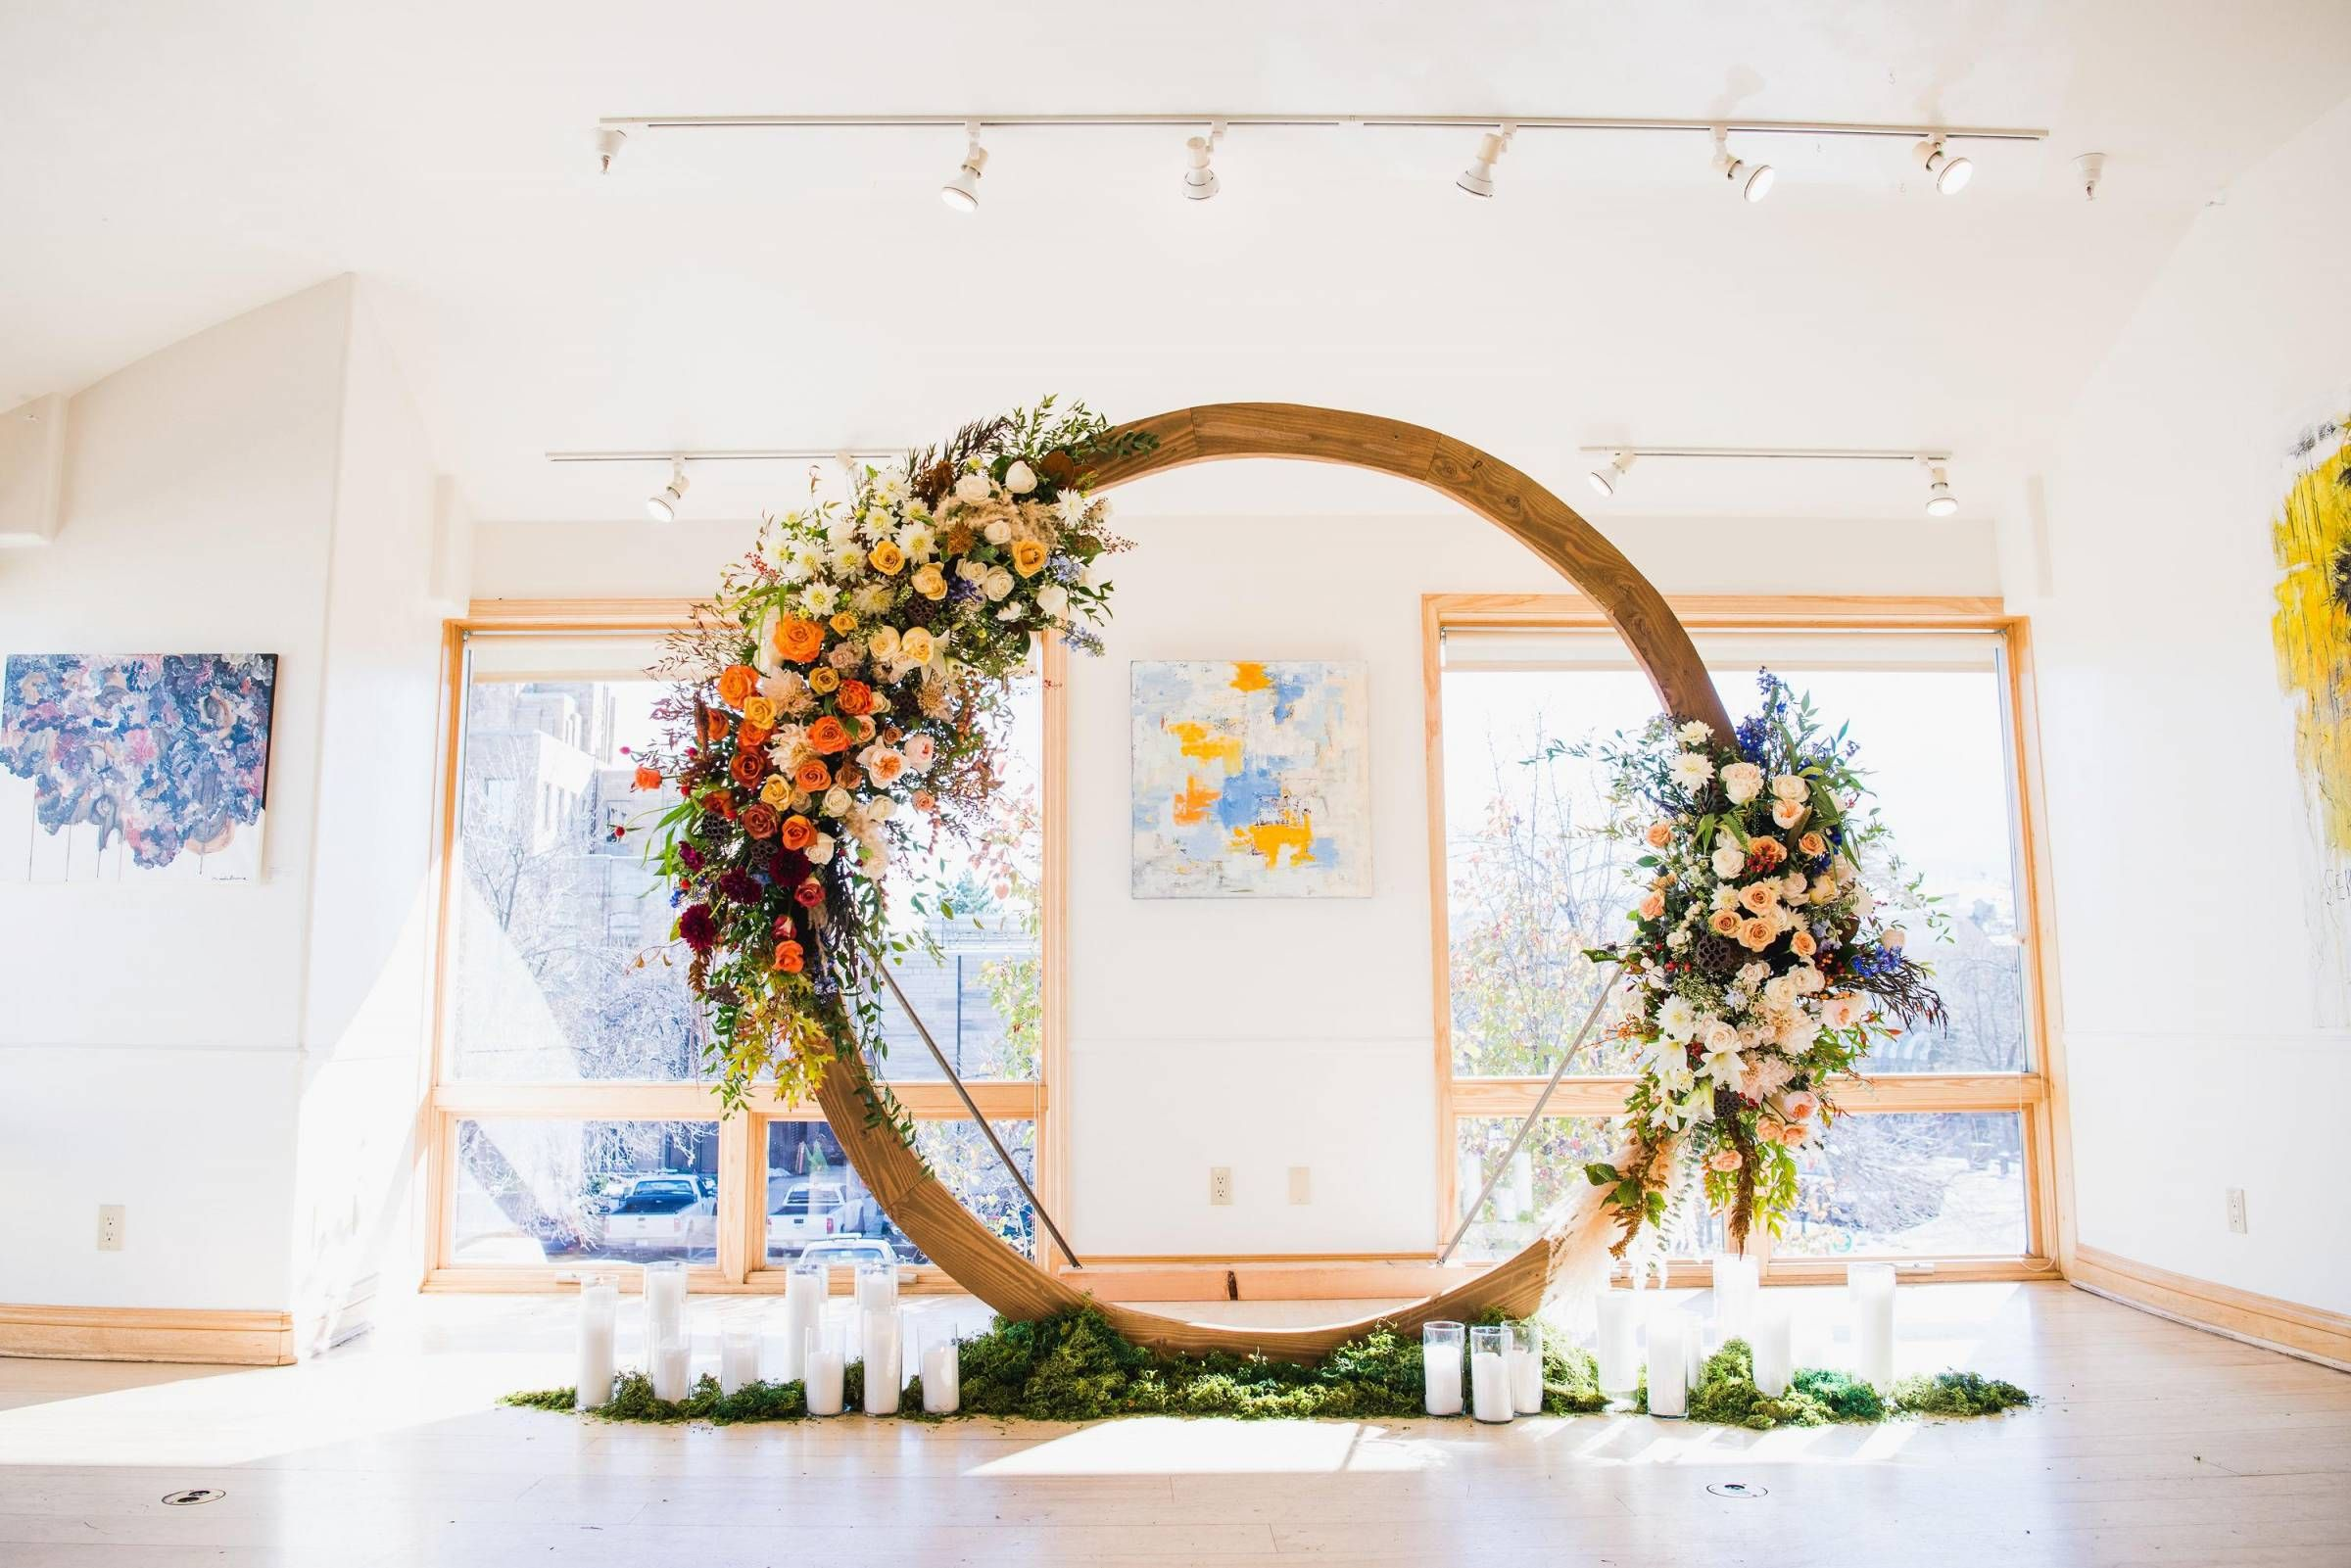 Benefits Of Getting Married In An Art Gallery Affordable Wedding